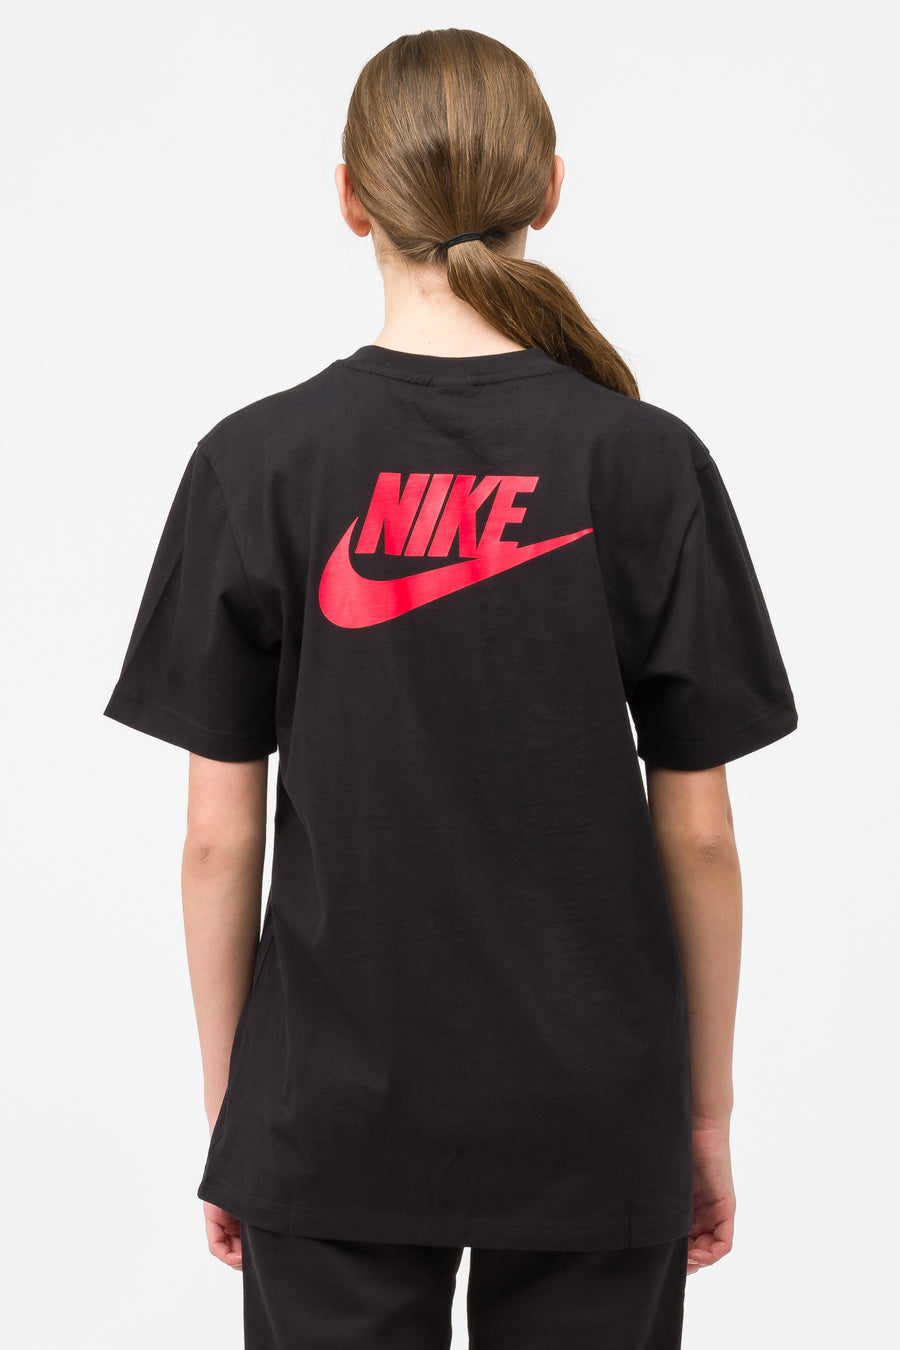 Nike Stranger Things Hawkins High T-Shirt in Black/Red - Notre